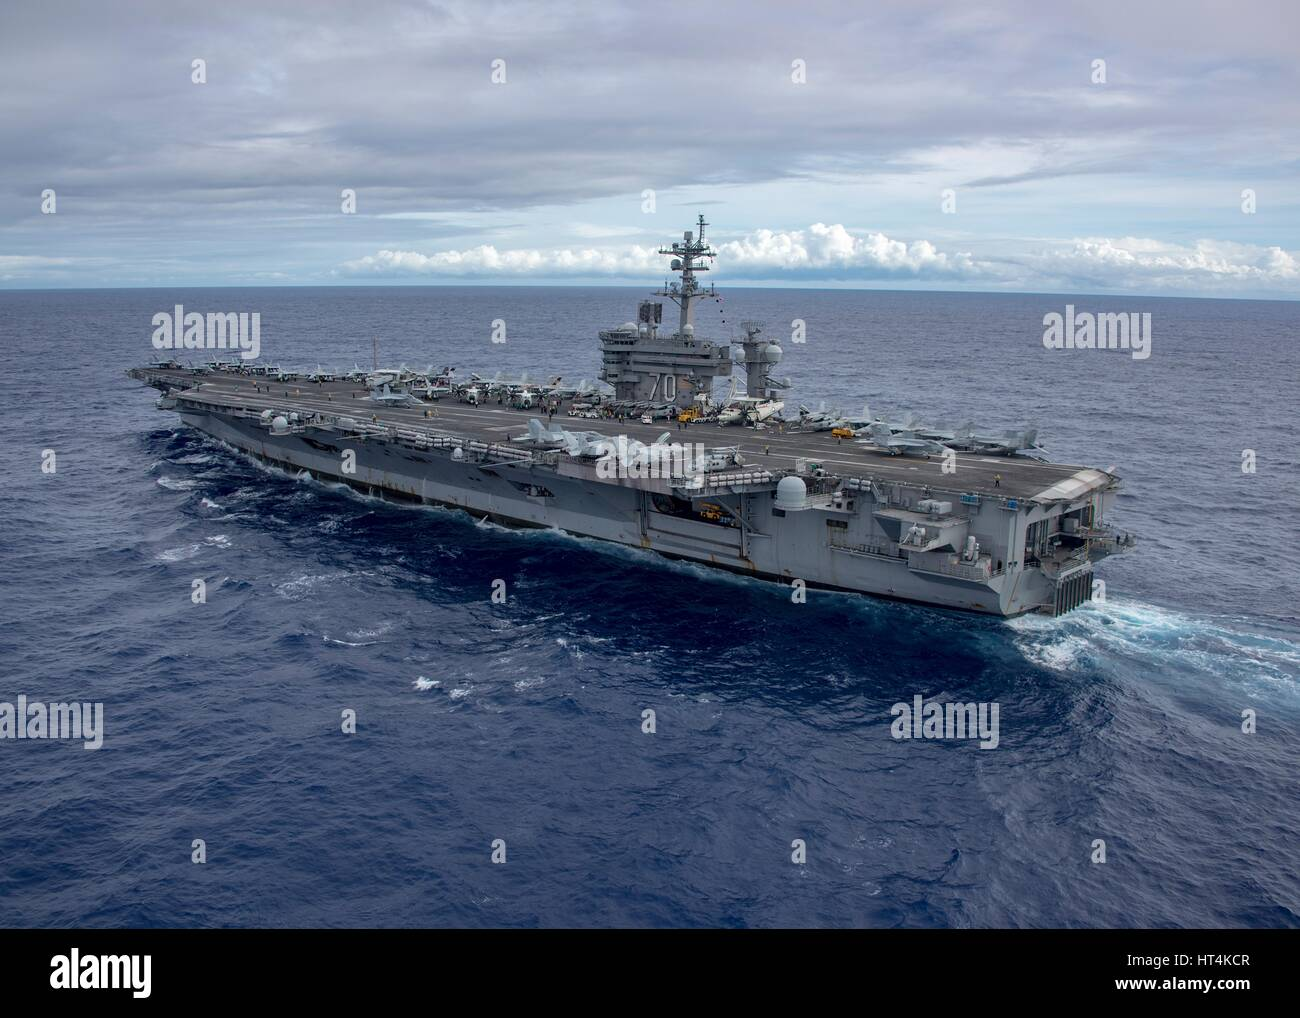 The USN Nimitz-class aircraft carrier USS Carl Vinson steams underway February 4, 2017 in the Pacific Ocean. - Stock Image